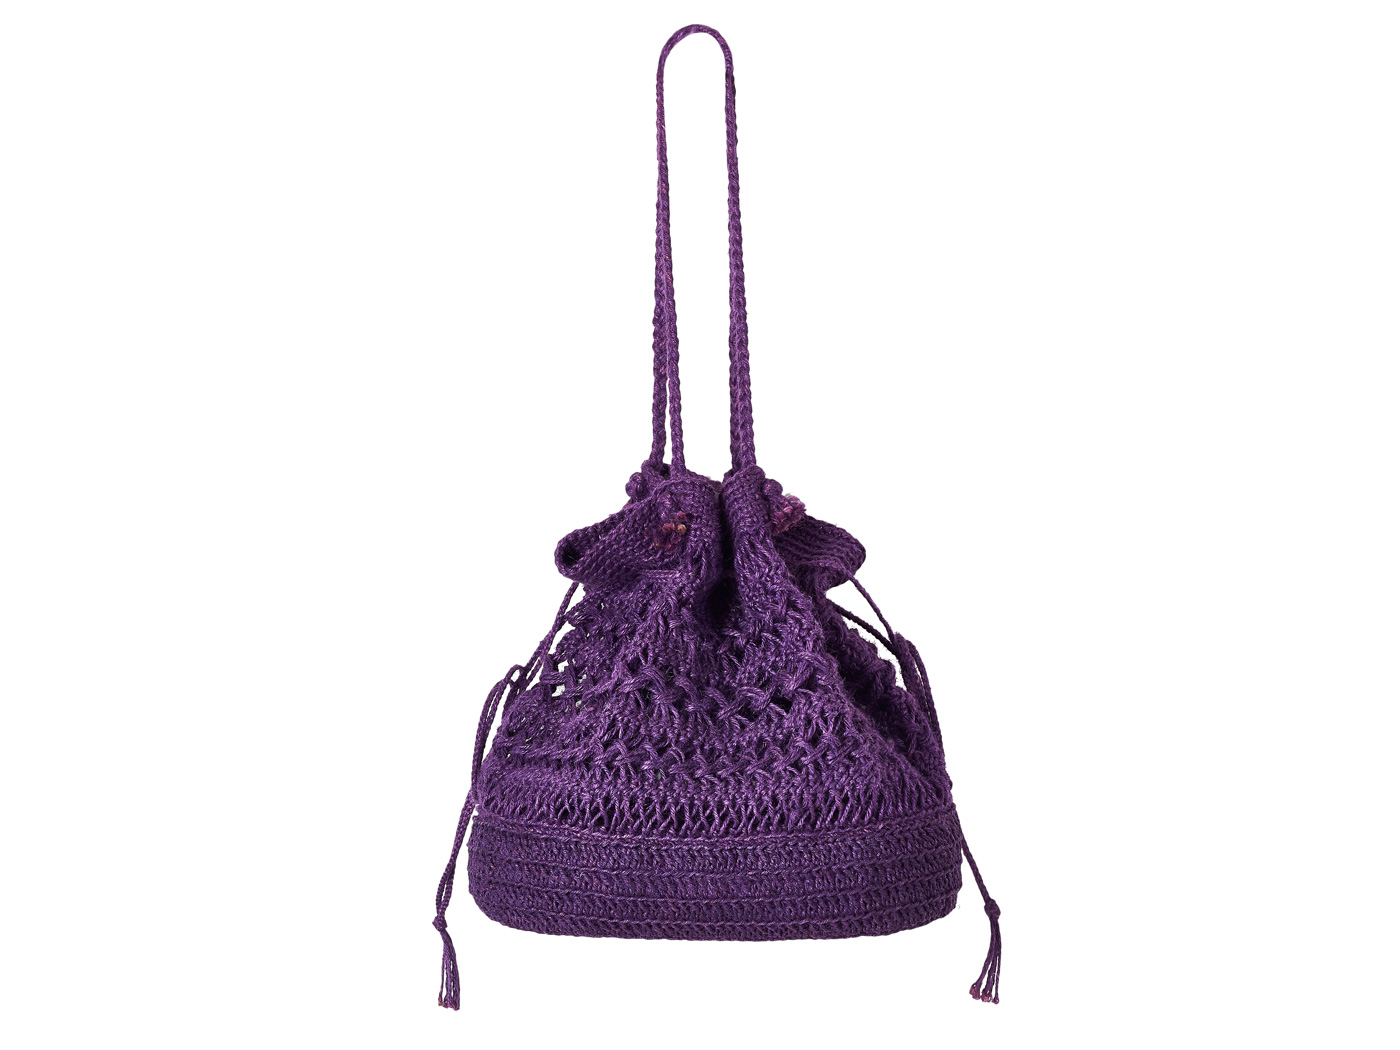 Golovina-fleur-knitted-bag-purple-2